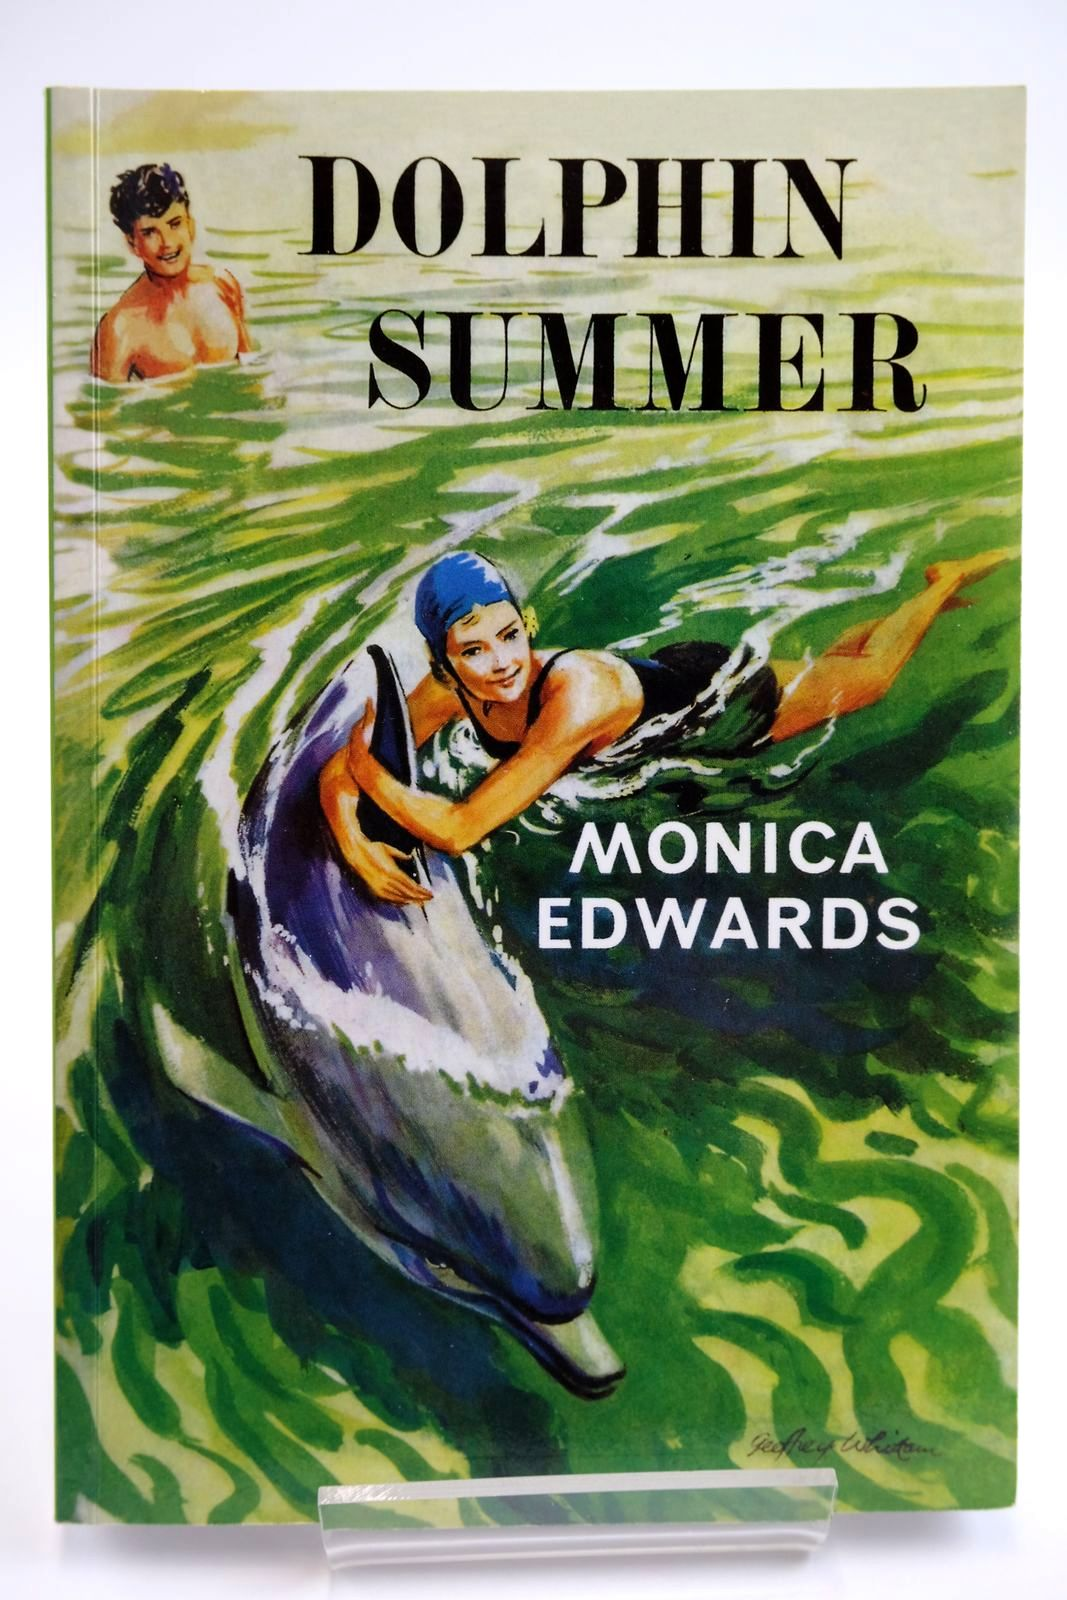 Photo of DOLPHIN SUMMER written by Edwards, Monica illustrated by Whittam, Geoffrey published by Girls Gone By (STOCK CODE: 2133512)  for sale by Stella & Rose's Books